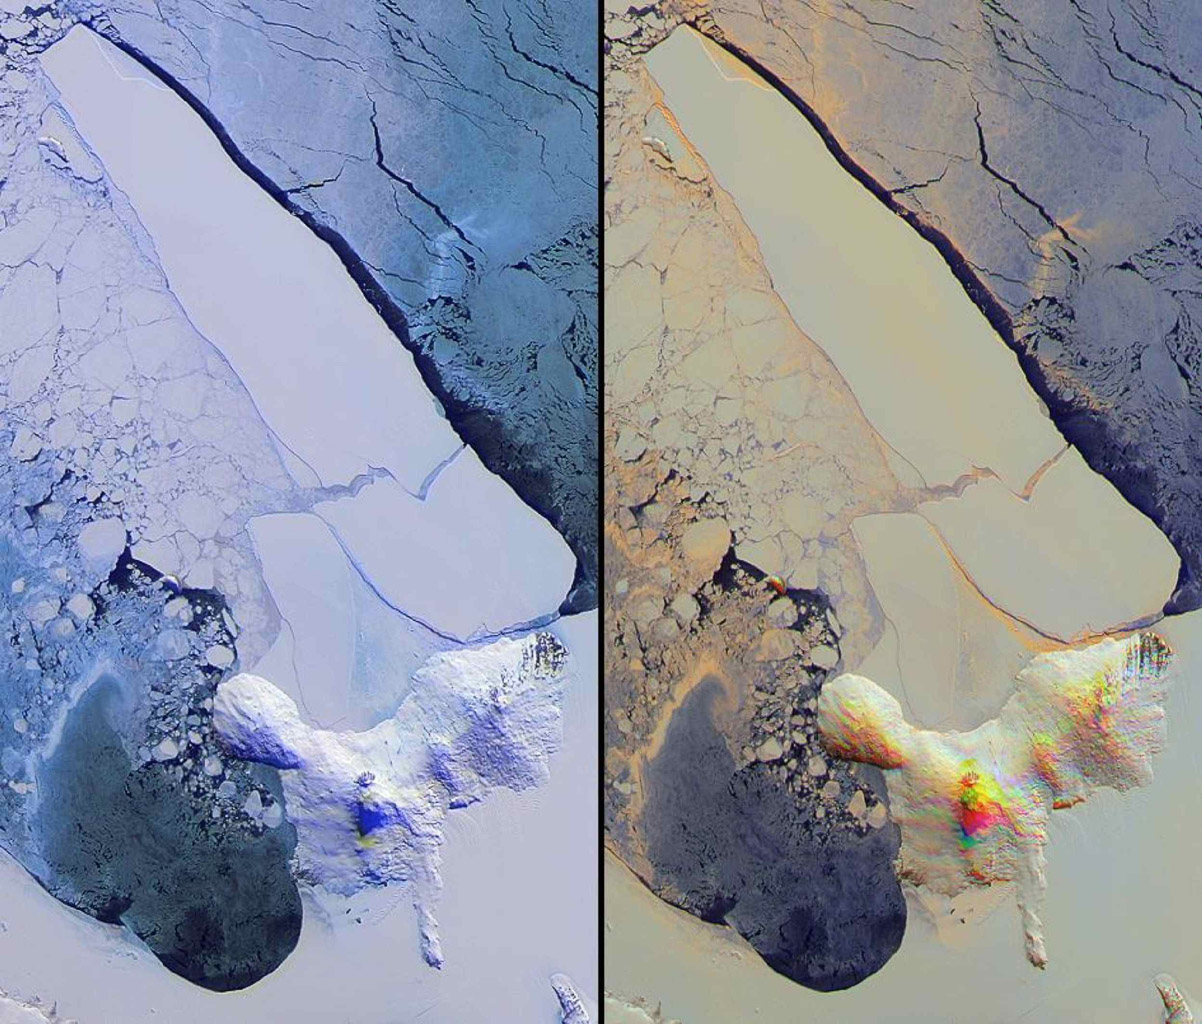 NASA's Terra spacecraft imaged Iceberg B-15A, the largest iceberg in the world (measuring about 11,000 square kilometers) when it broke away from Western Antarctica's Ross Ice Shelf in March 2000.